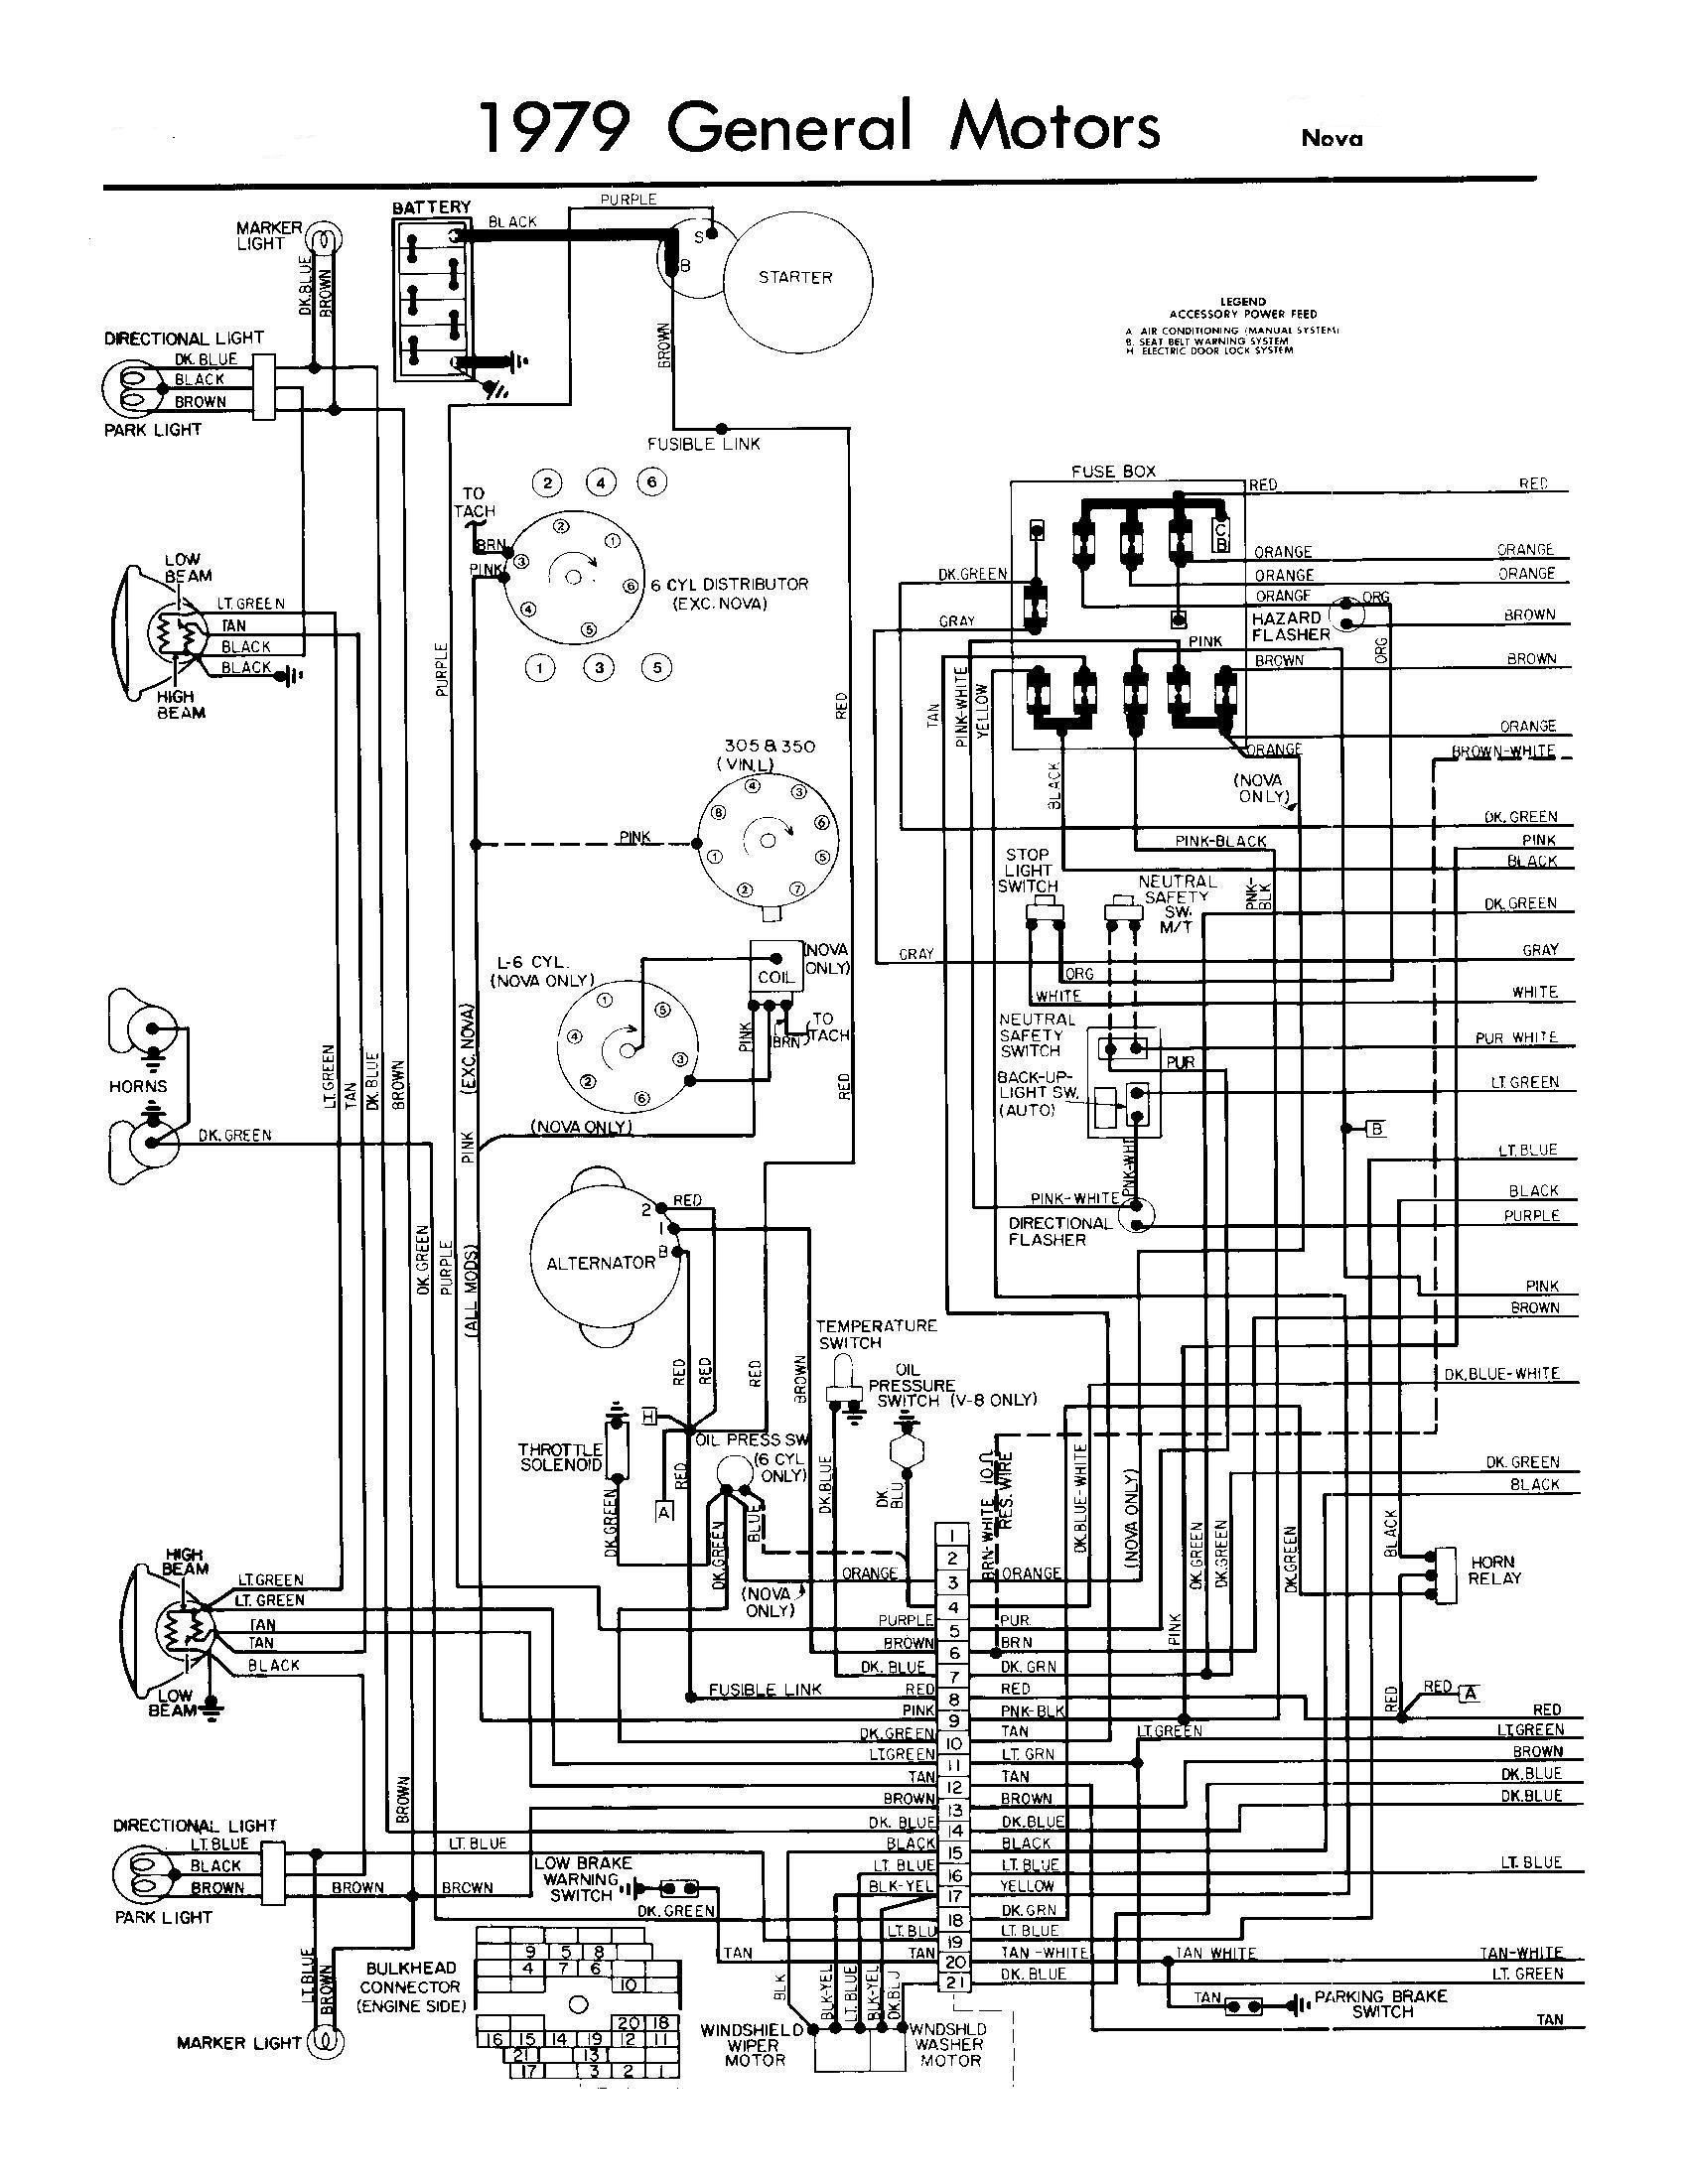 1979 gmc wiring schematic online schematic diagram u2022 rh holyoak co gmc terrain wiring schematics wiring schematic 2002 gmc sonoma